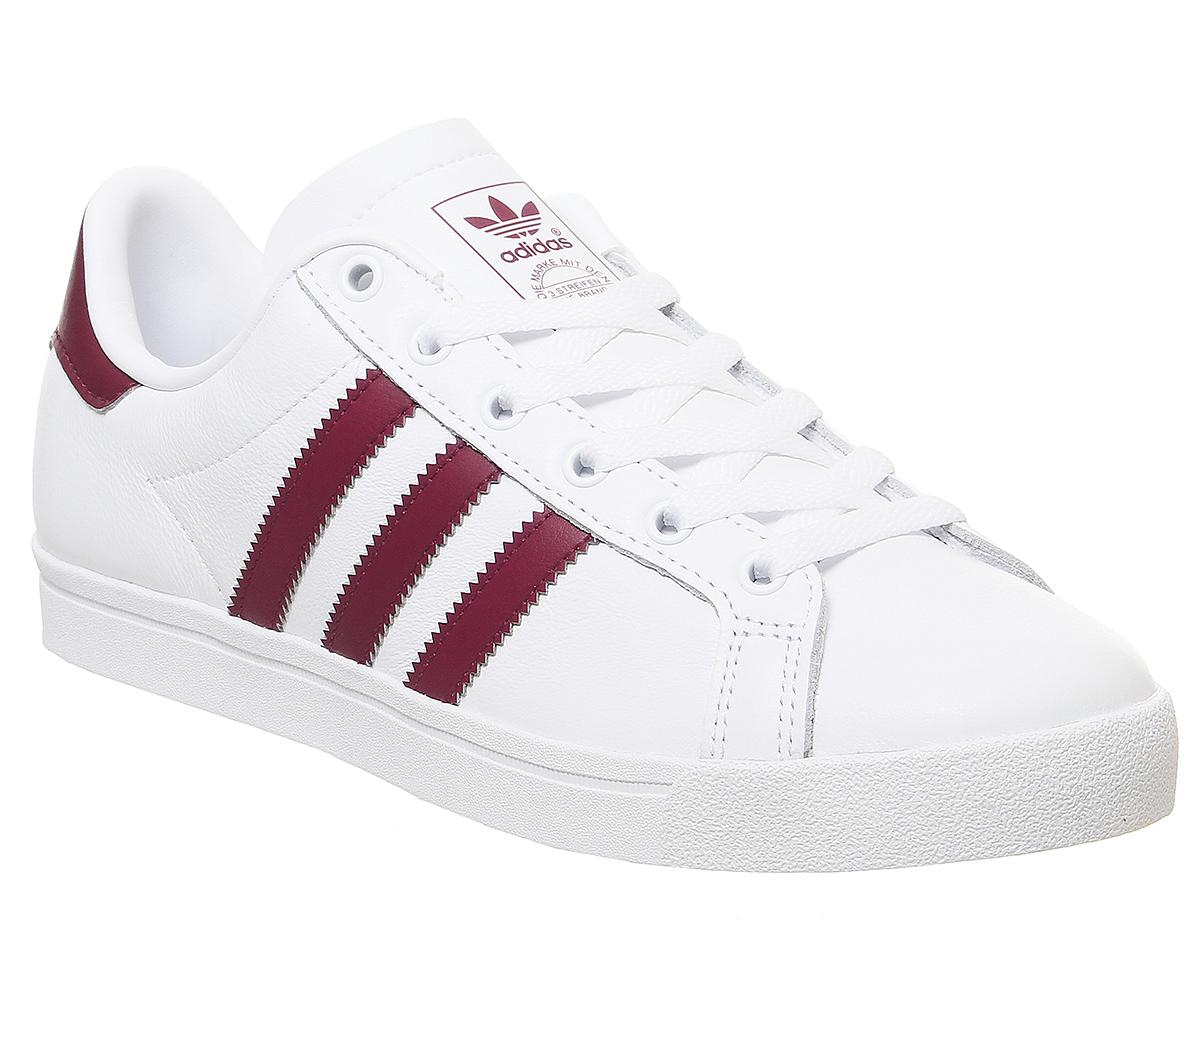 Arrepentimiento Empírico Pulido  adidas Coast Star Trainers White Burgundy - Hers trainers